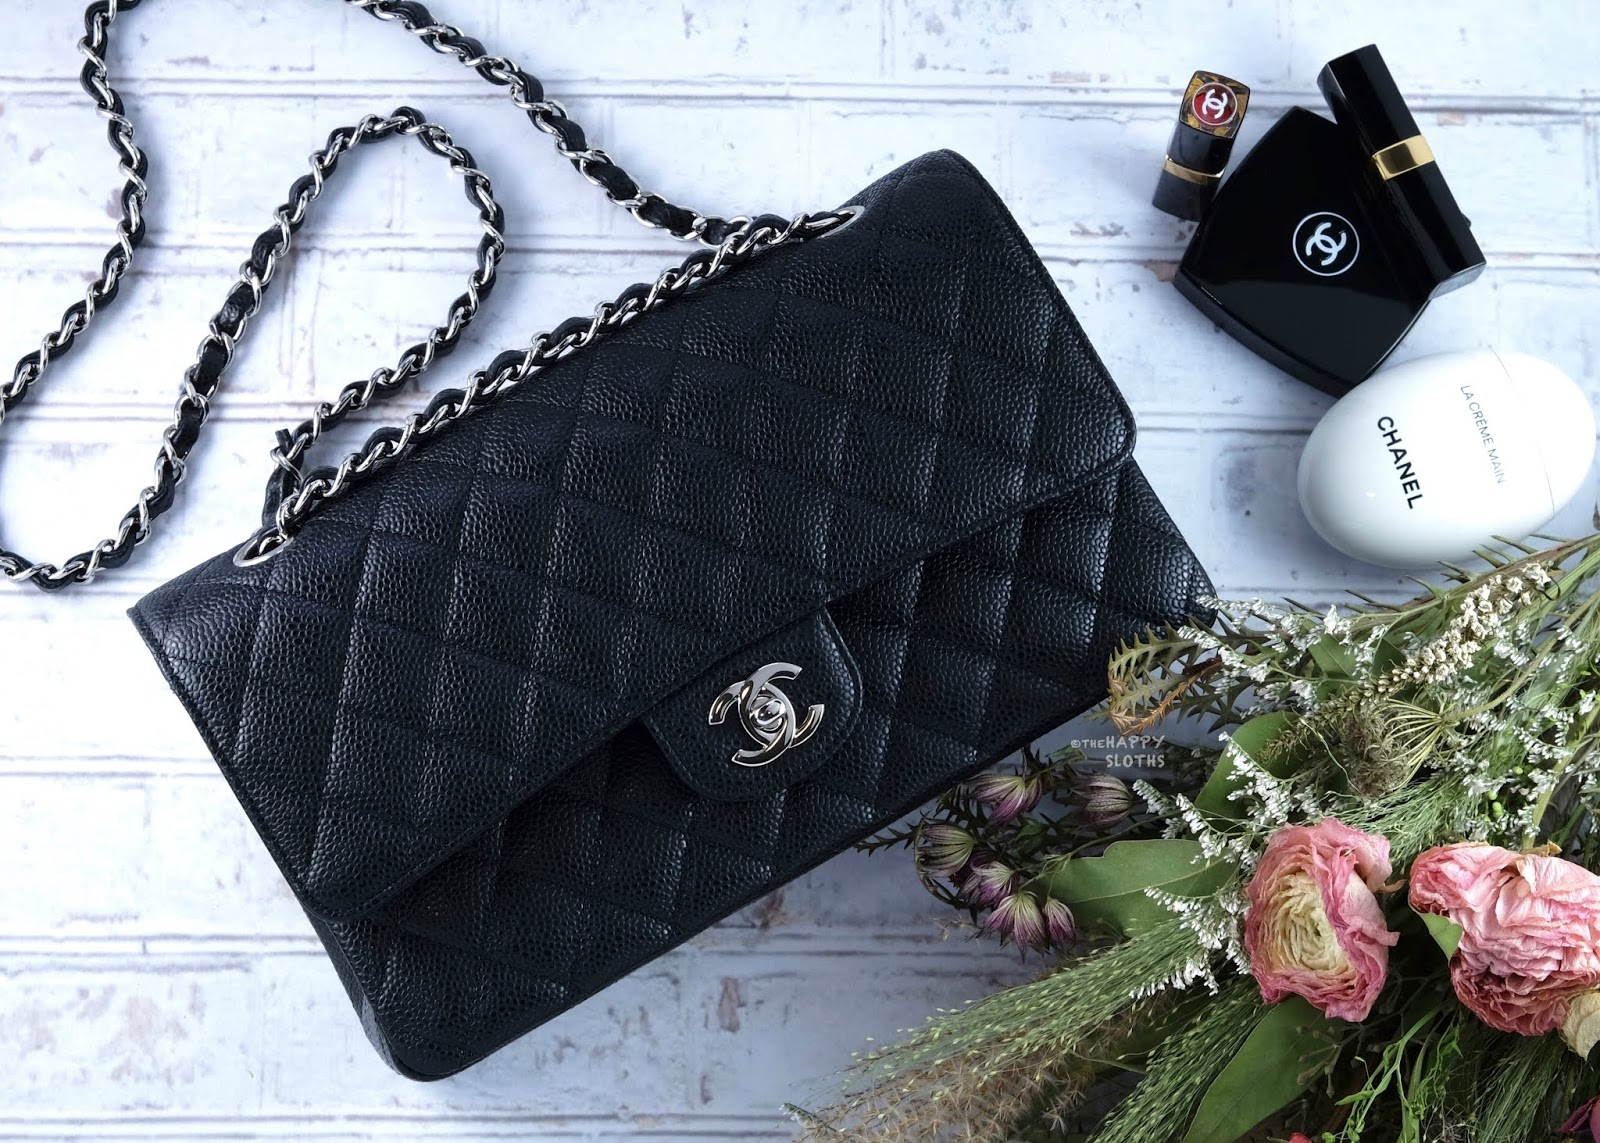 Chanel Classic Flap Bag Review The